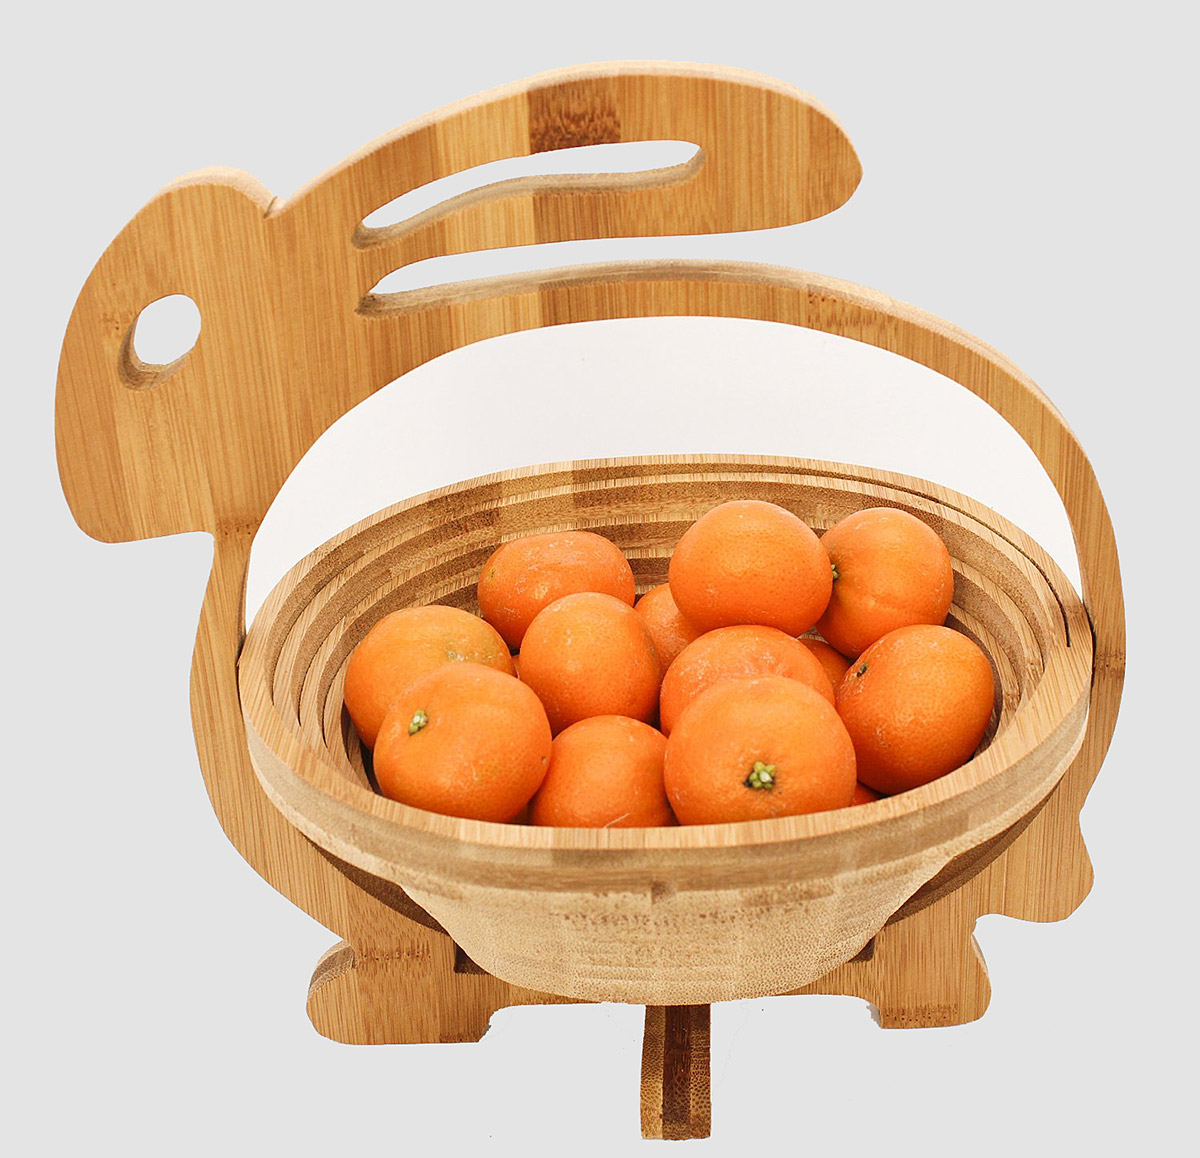 Bamboo folding fruit bowl in the shape of a rabbit